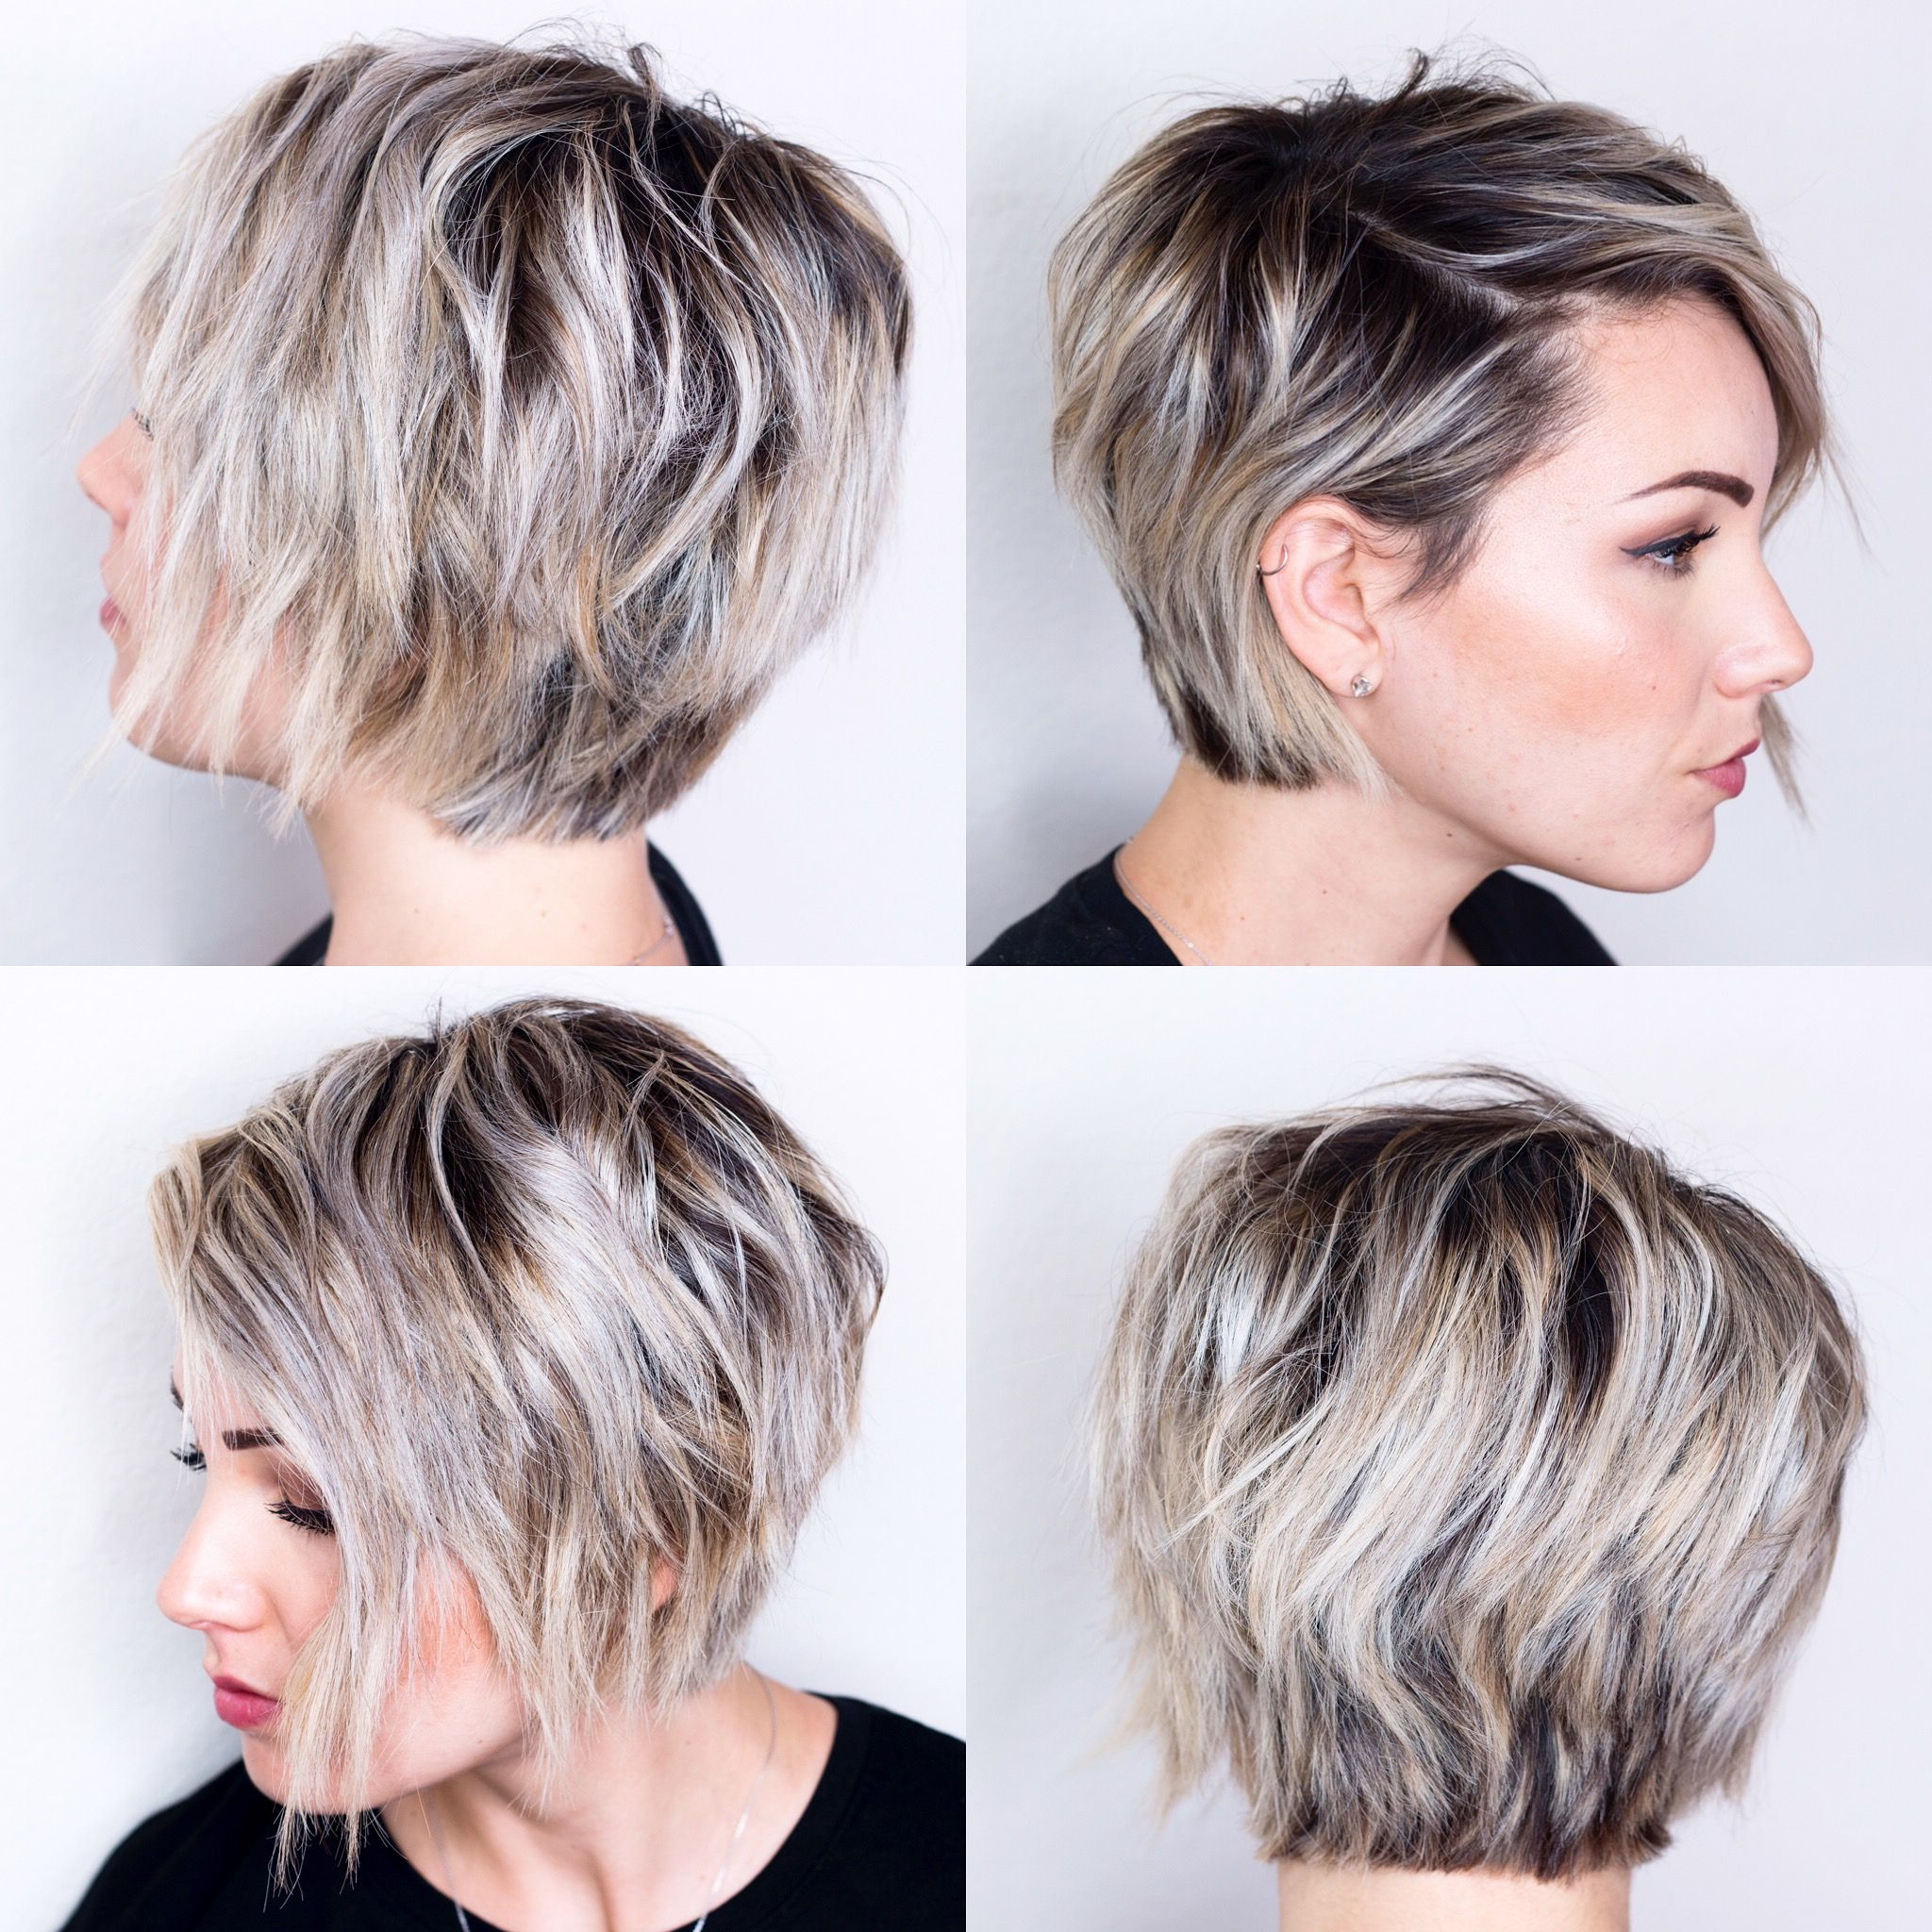 360 View Of Short Hair | H A I R In 2018 | Pinterest | Short Hair Pertaining To Women Short Hairstyles For Oval Faces (View 12 of 25)